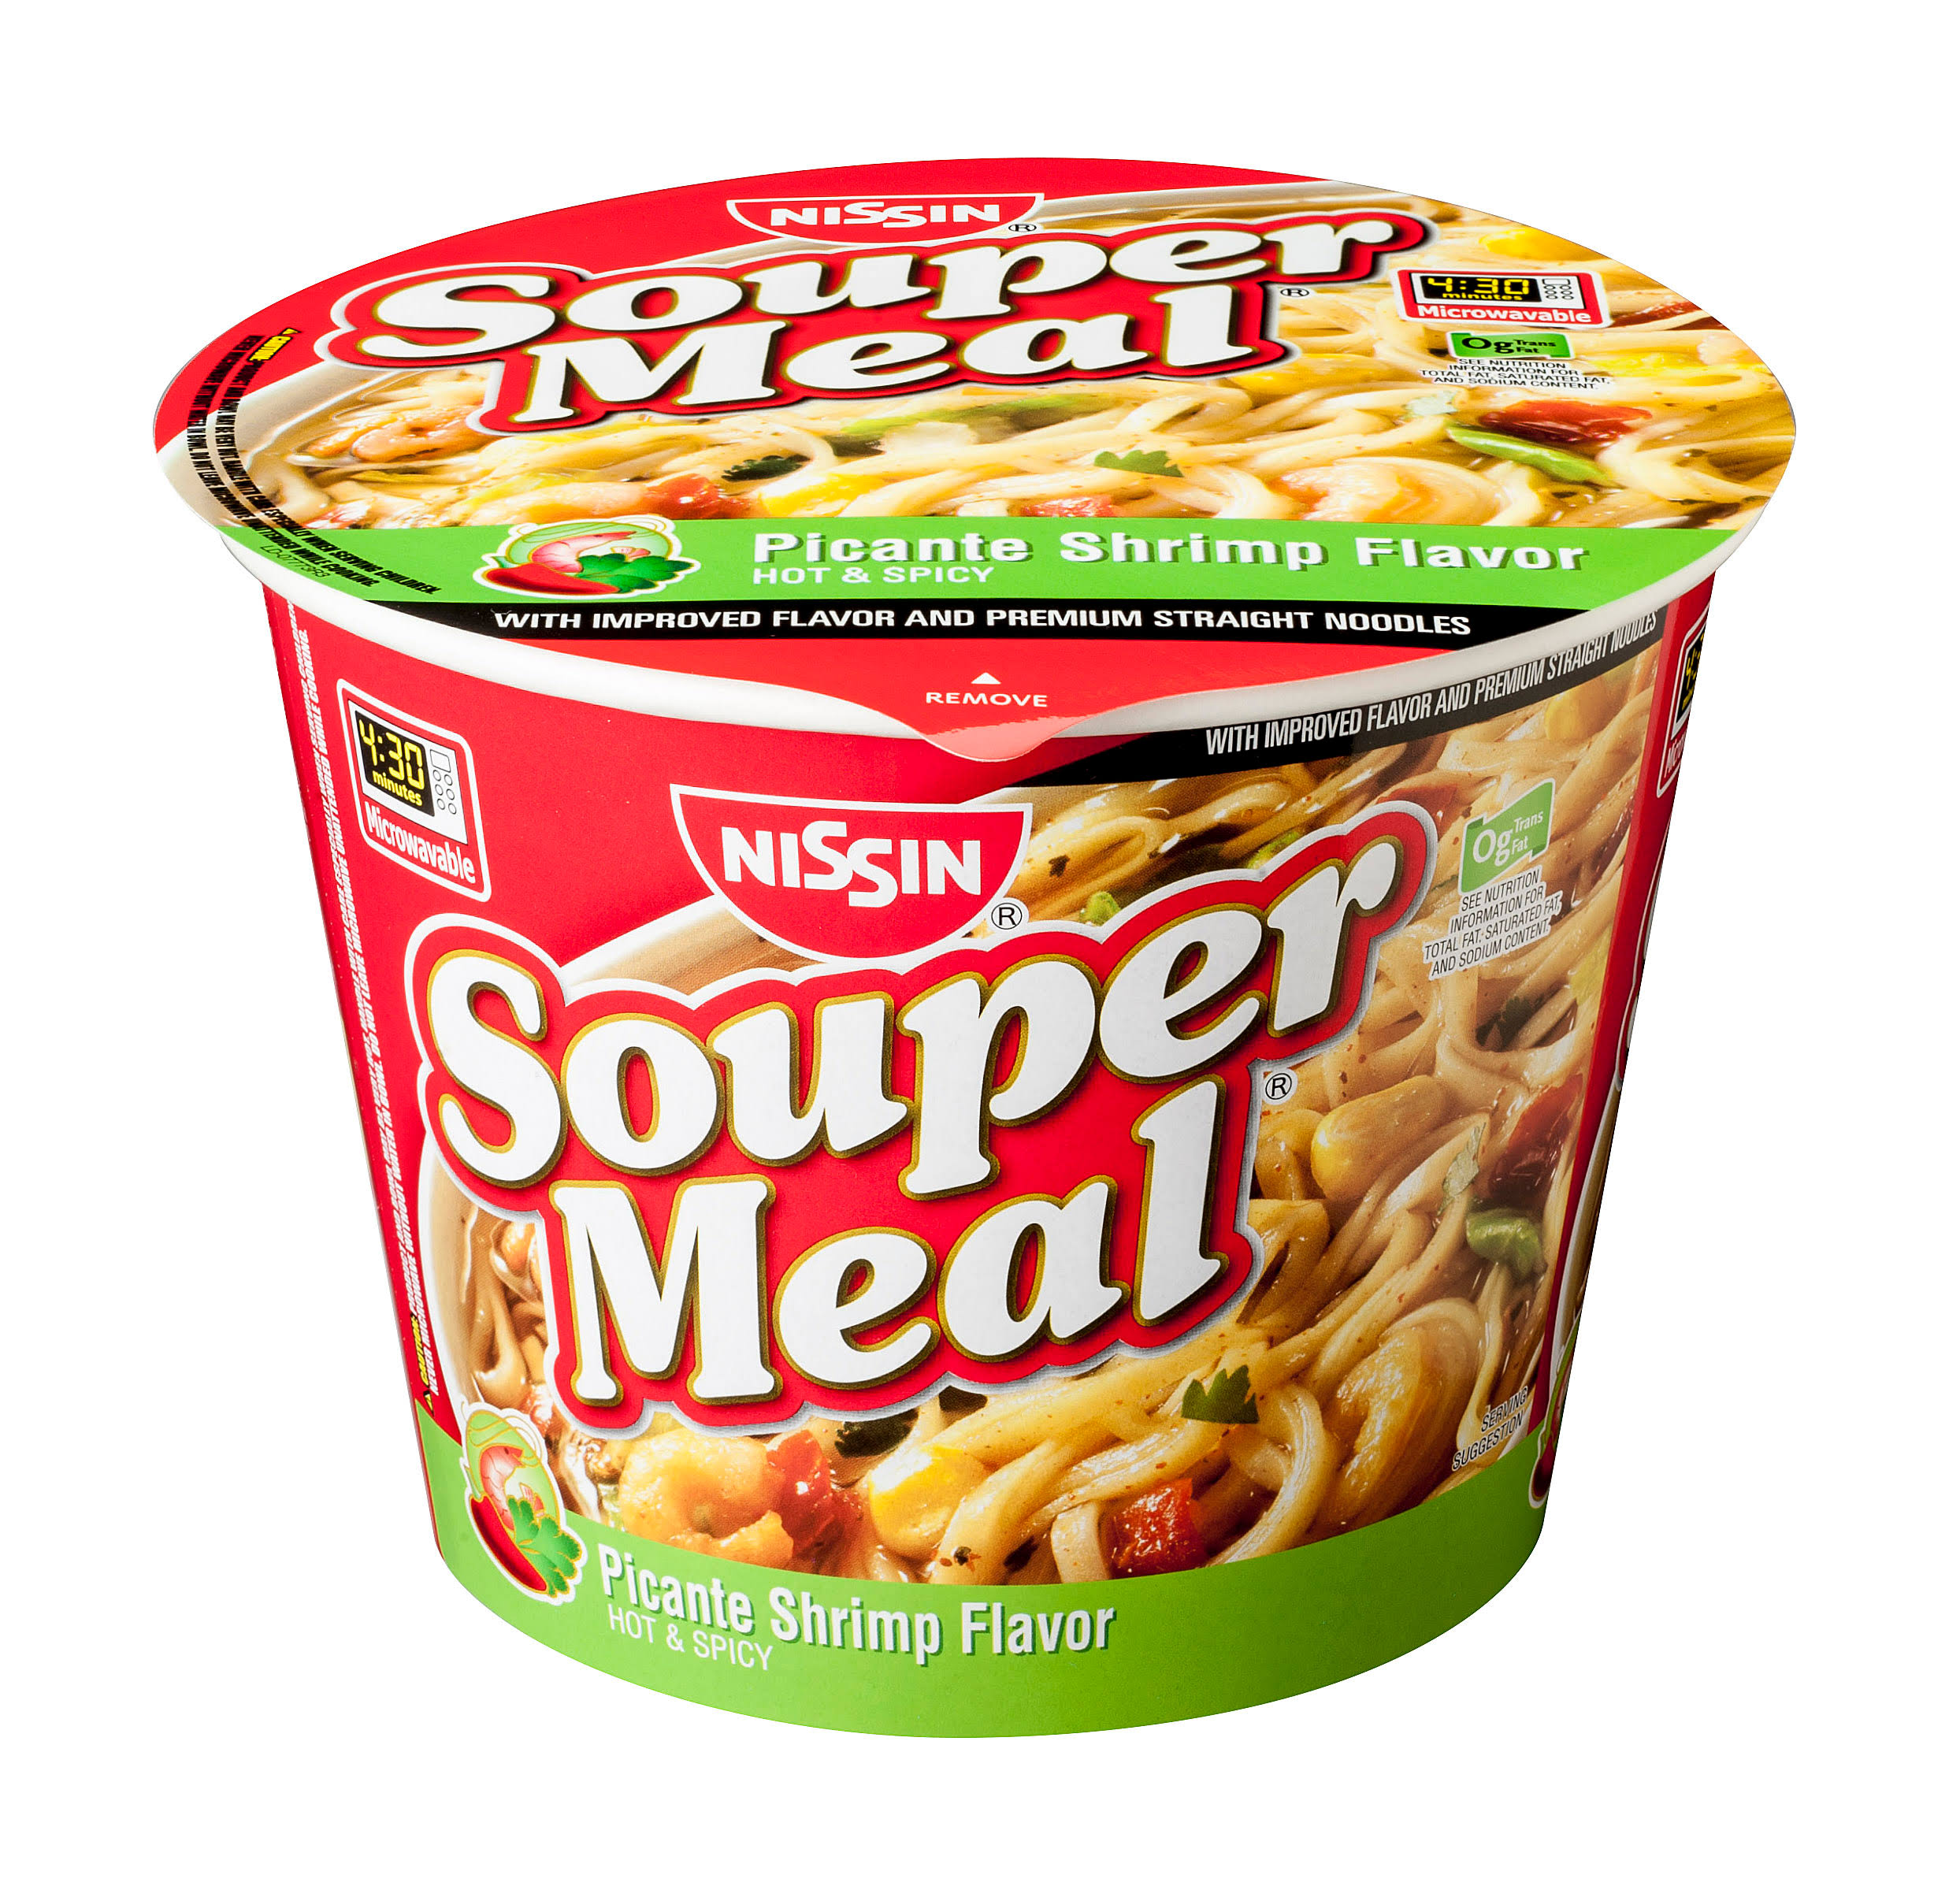 Nissin Souper Meal Bowl Instant Noodle Soup - Picante Shrimp, Hot and Spicy, 4.03oz